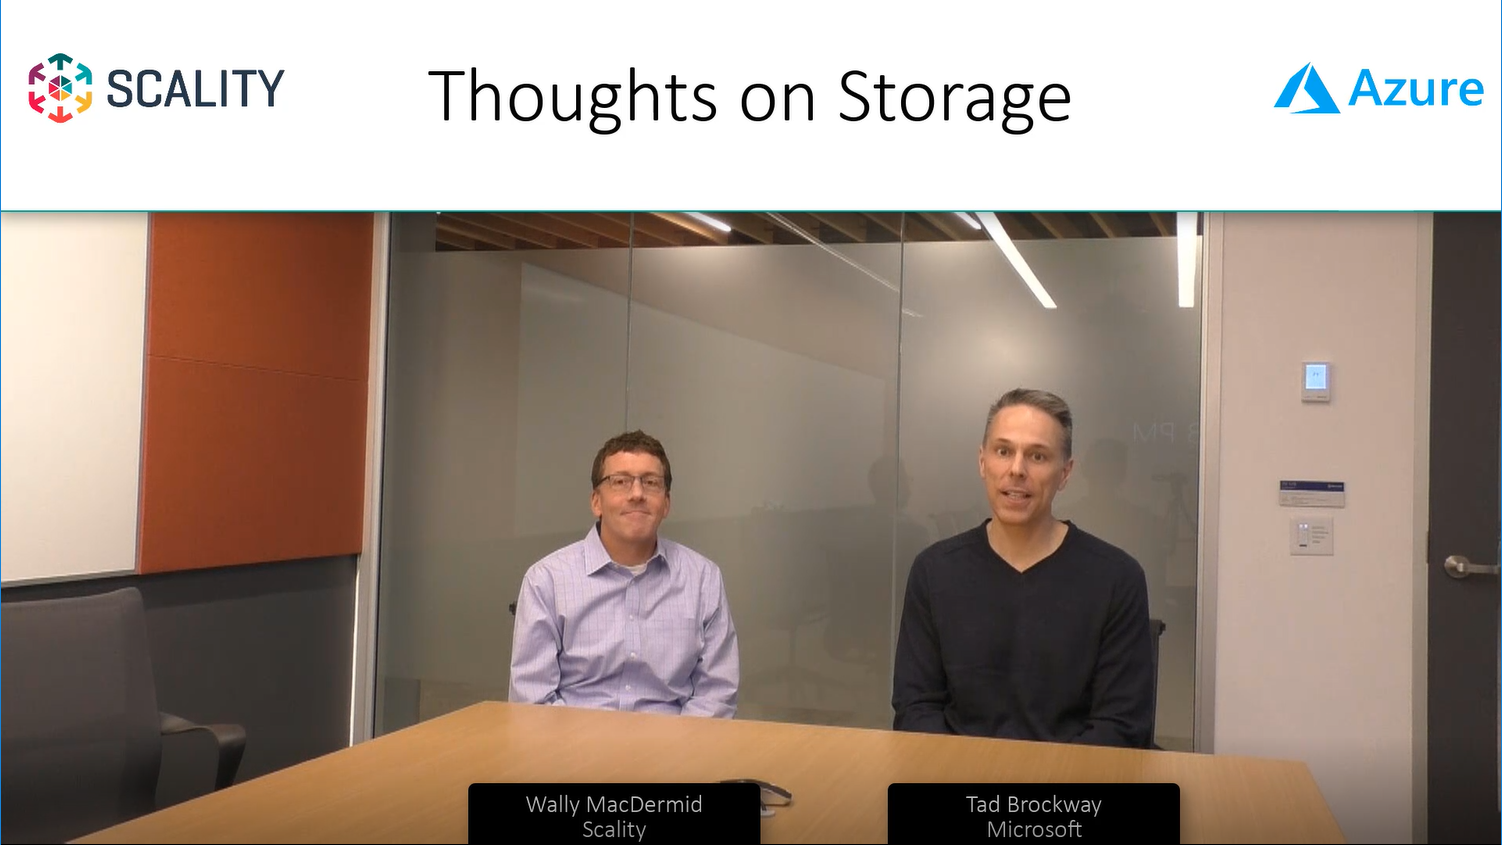 Thoughts on Storage with Scality